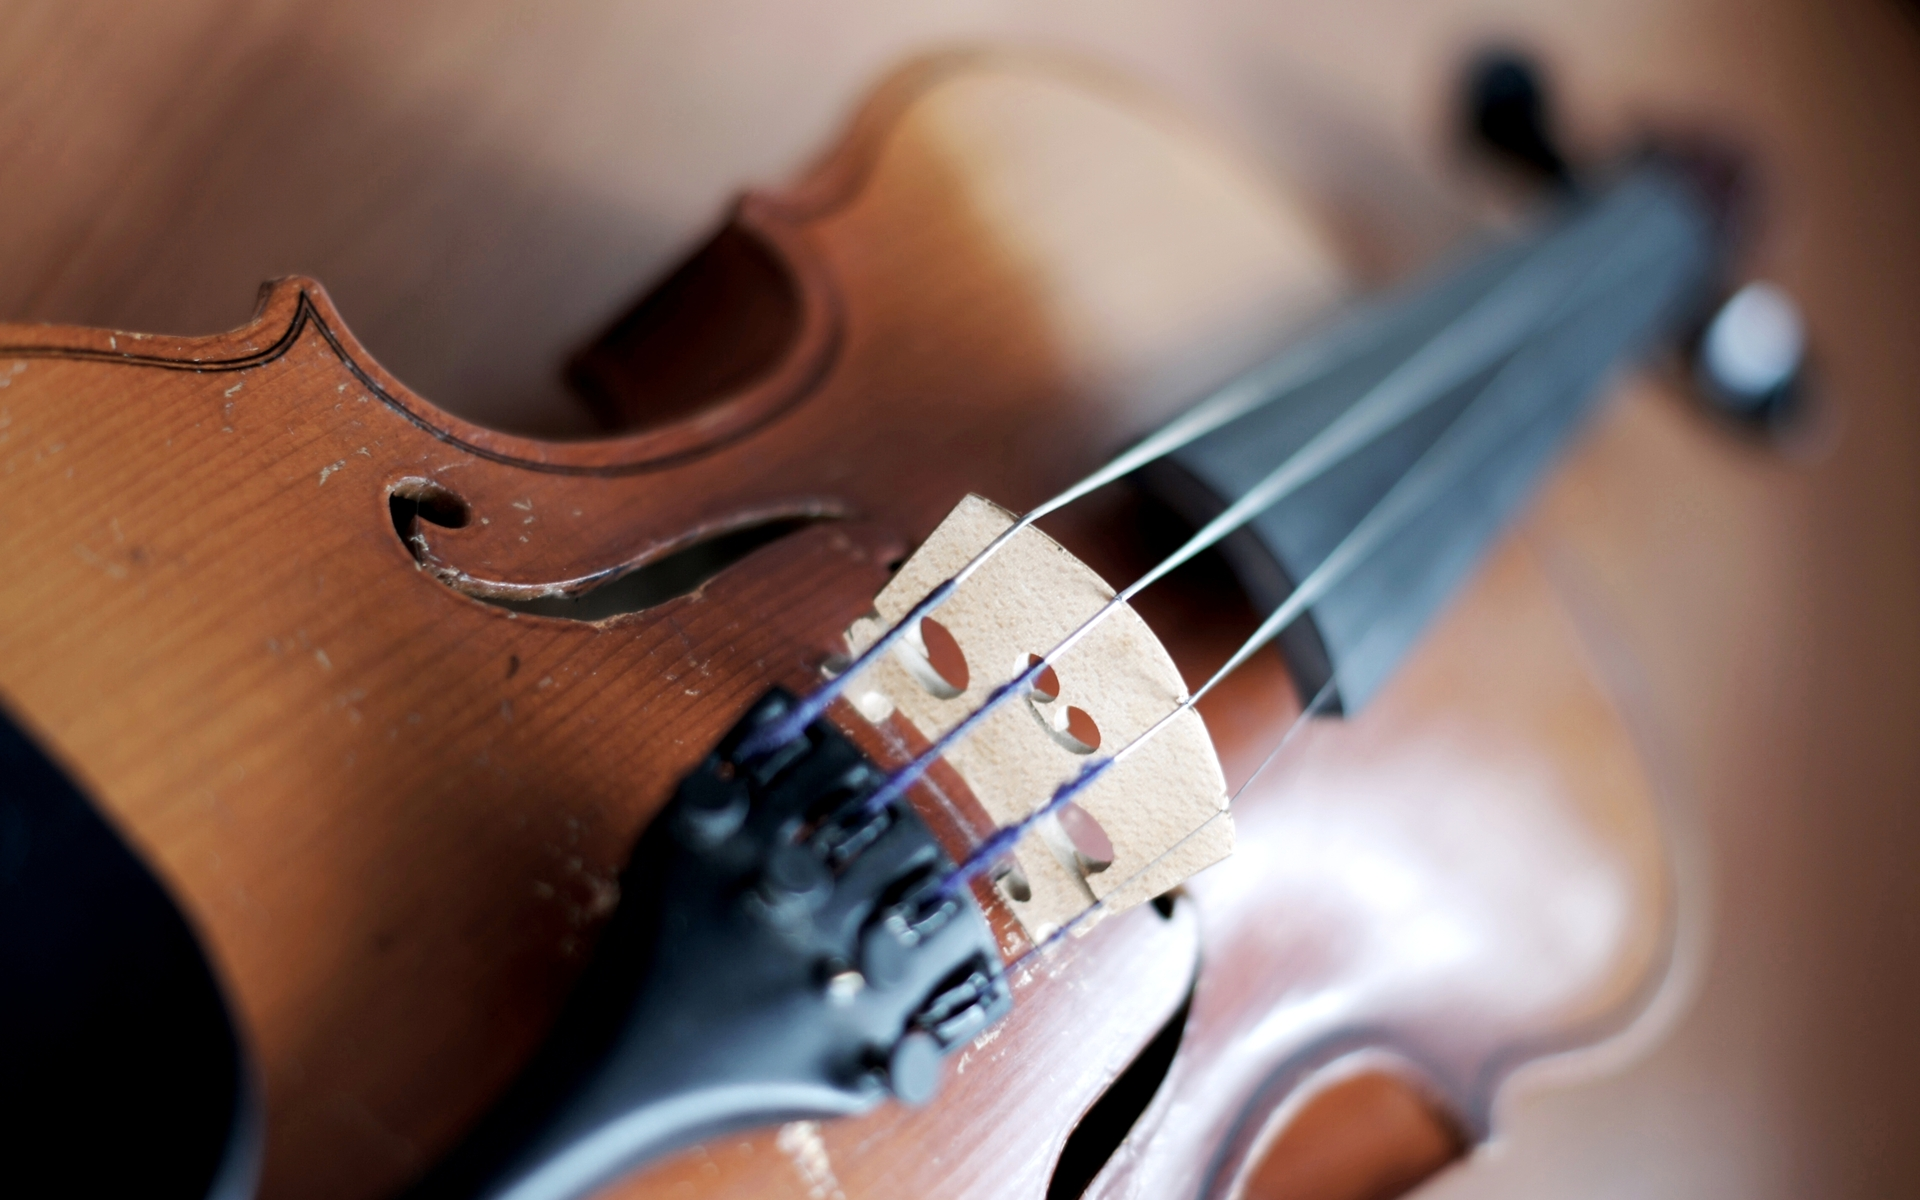 Violin Full HD Wallpaper and Background Image | 1920x1200 ...